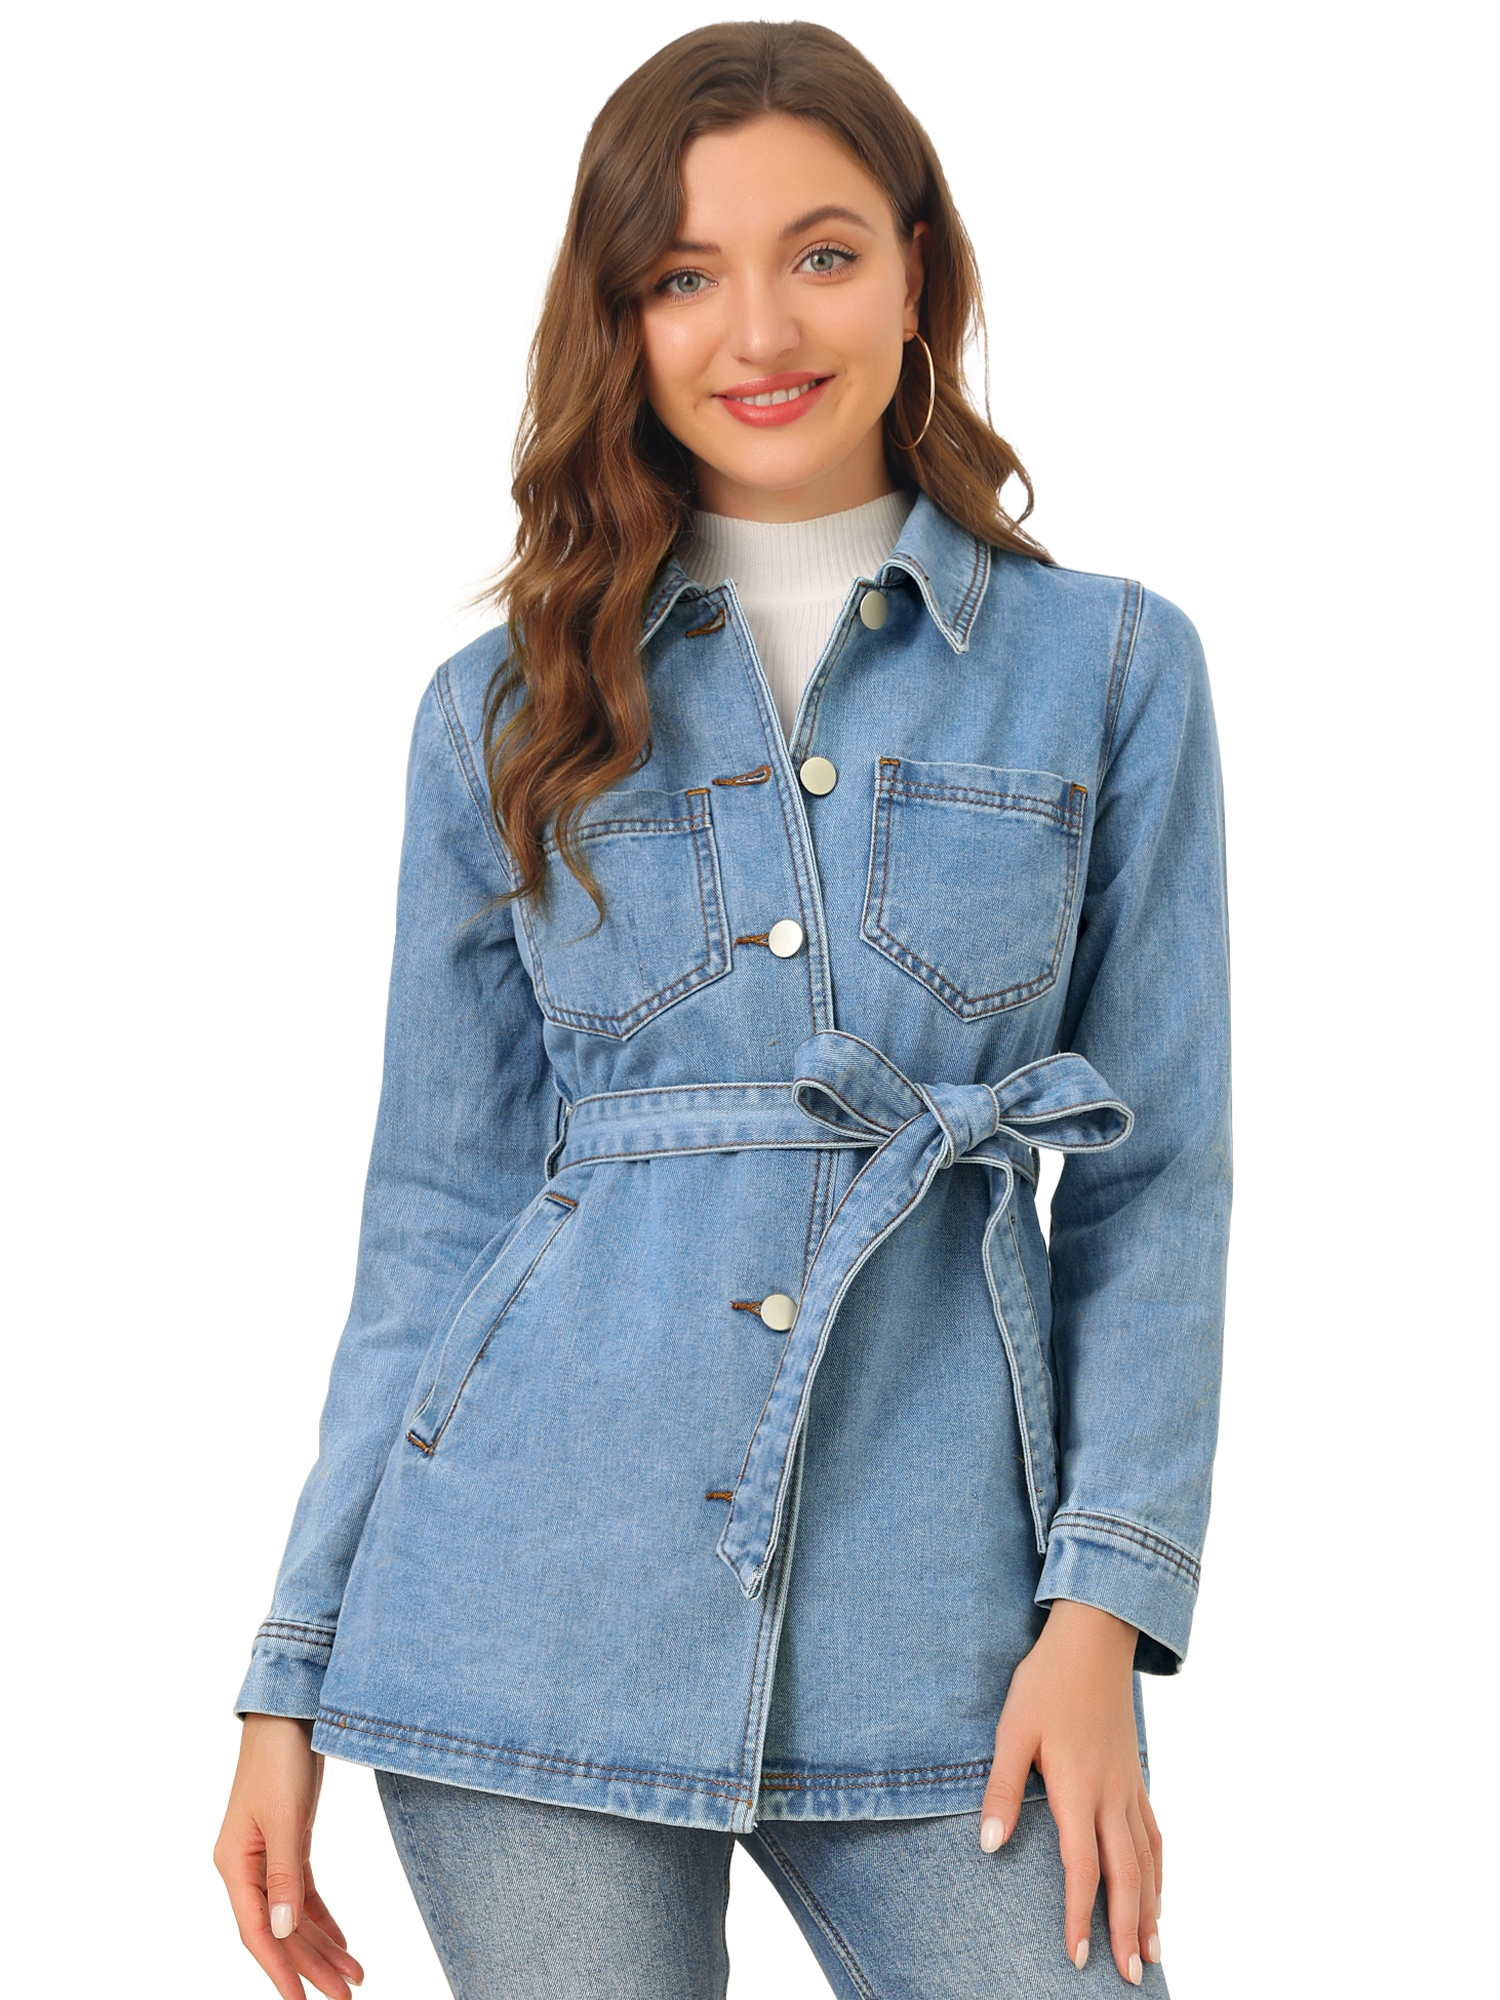 Allegra K Woman's Boyfriend Tie Waist Loose Denim Jacket Blue S